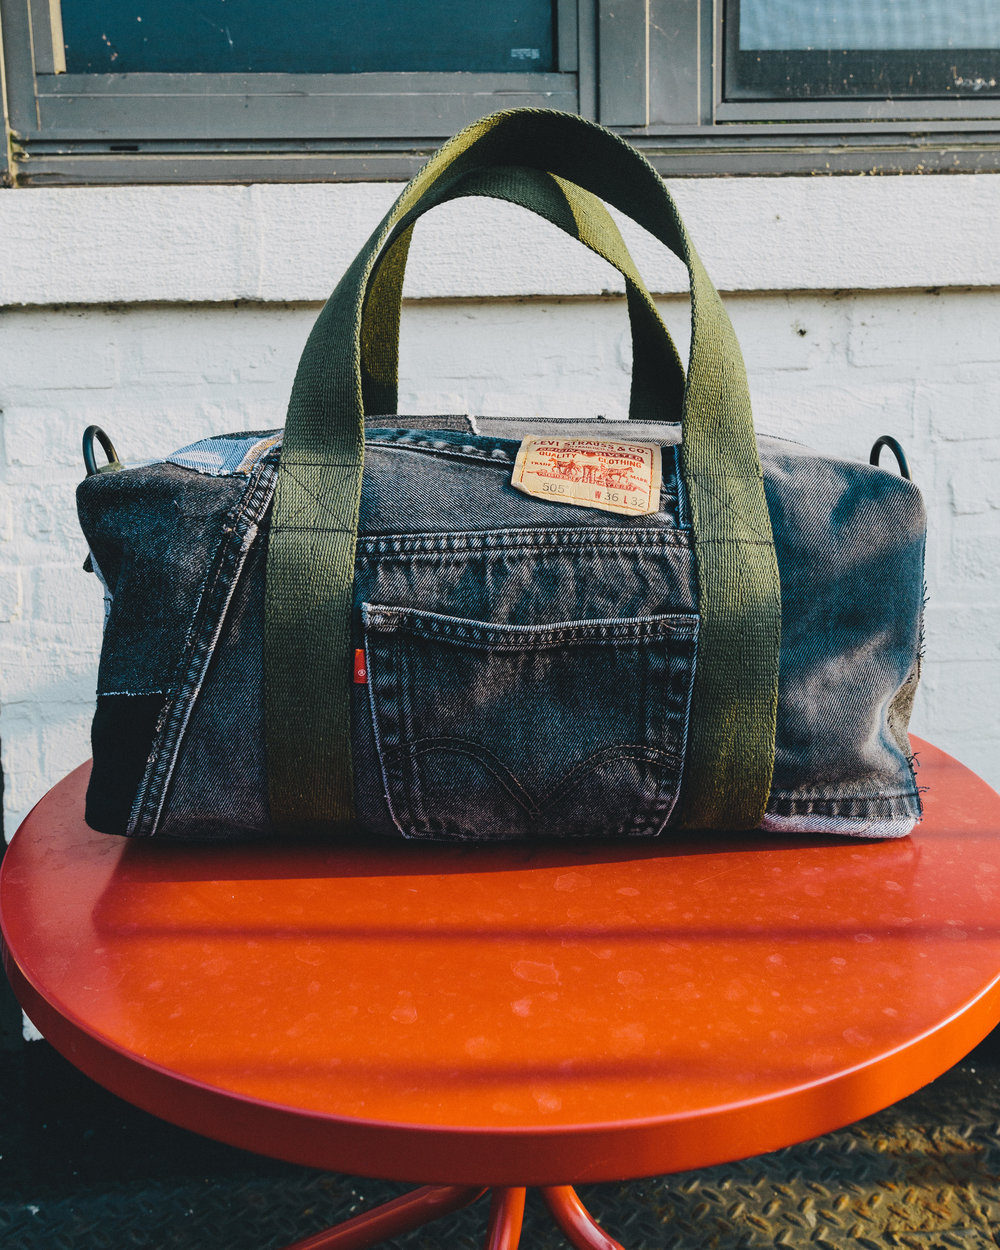 Black/Military Duffel - Made from various dark denims highlighting an American classic; the Levi's jean.